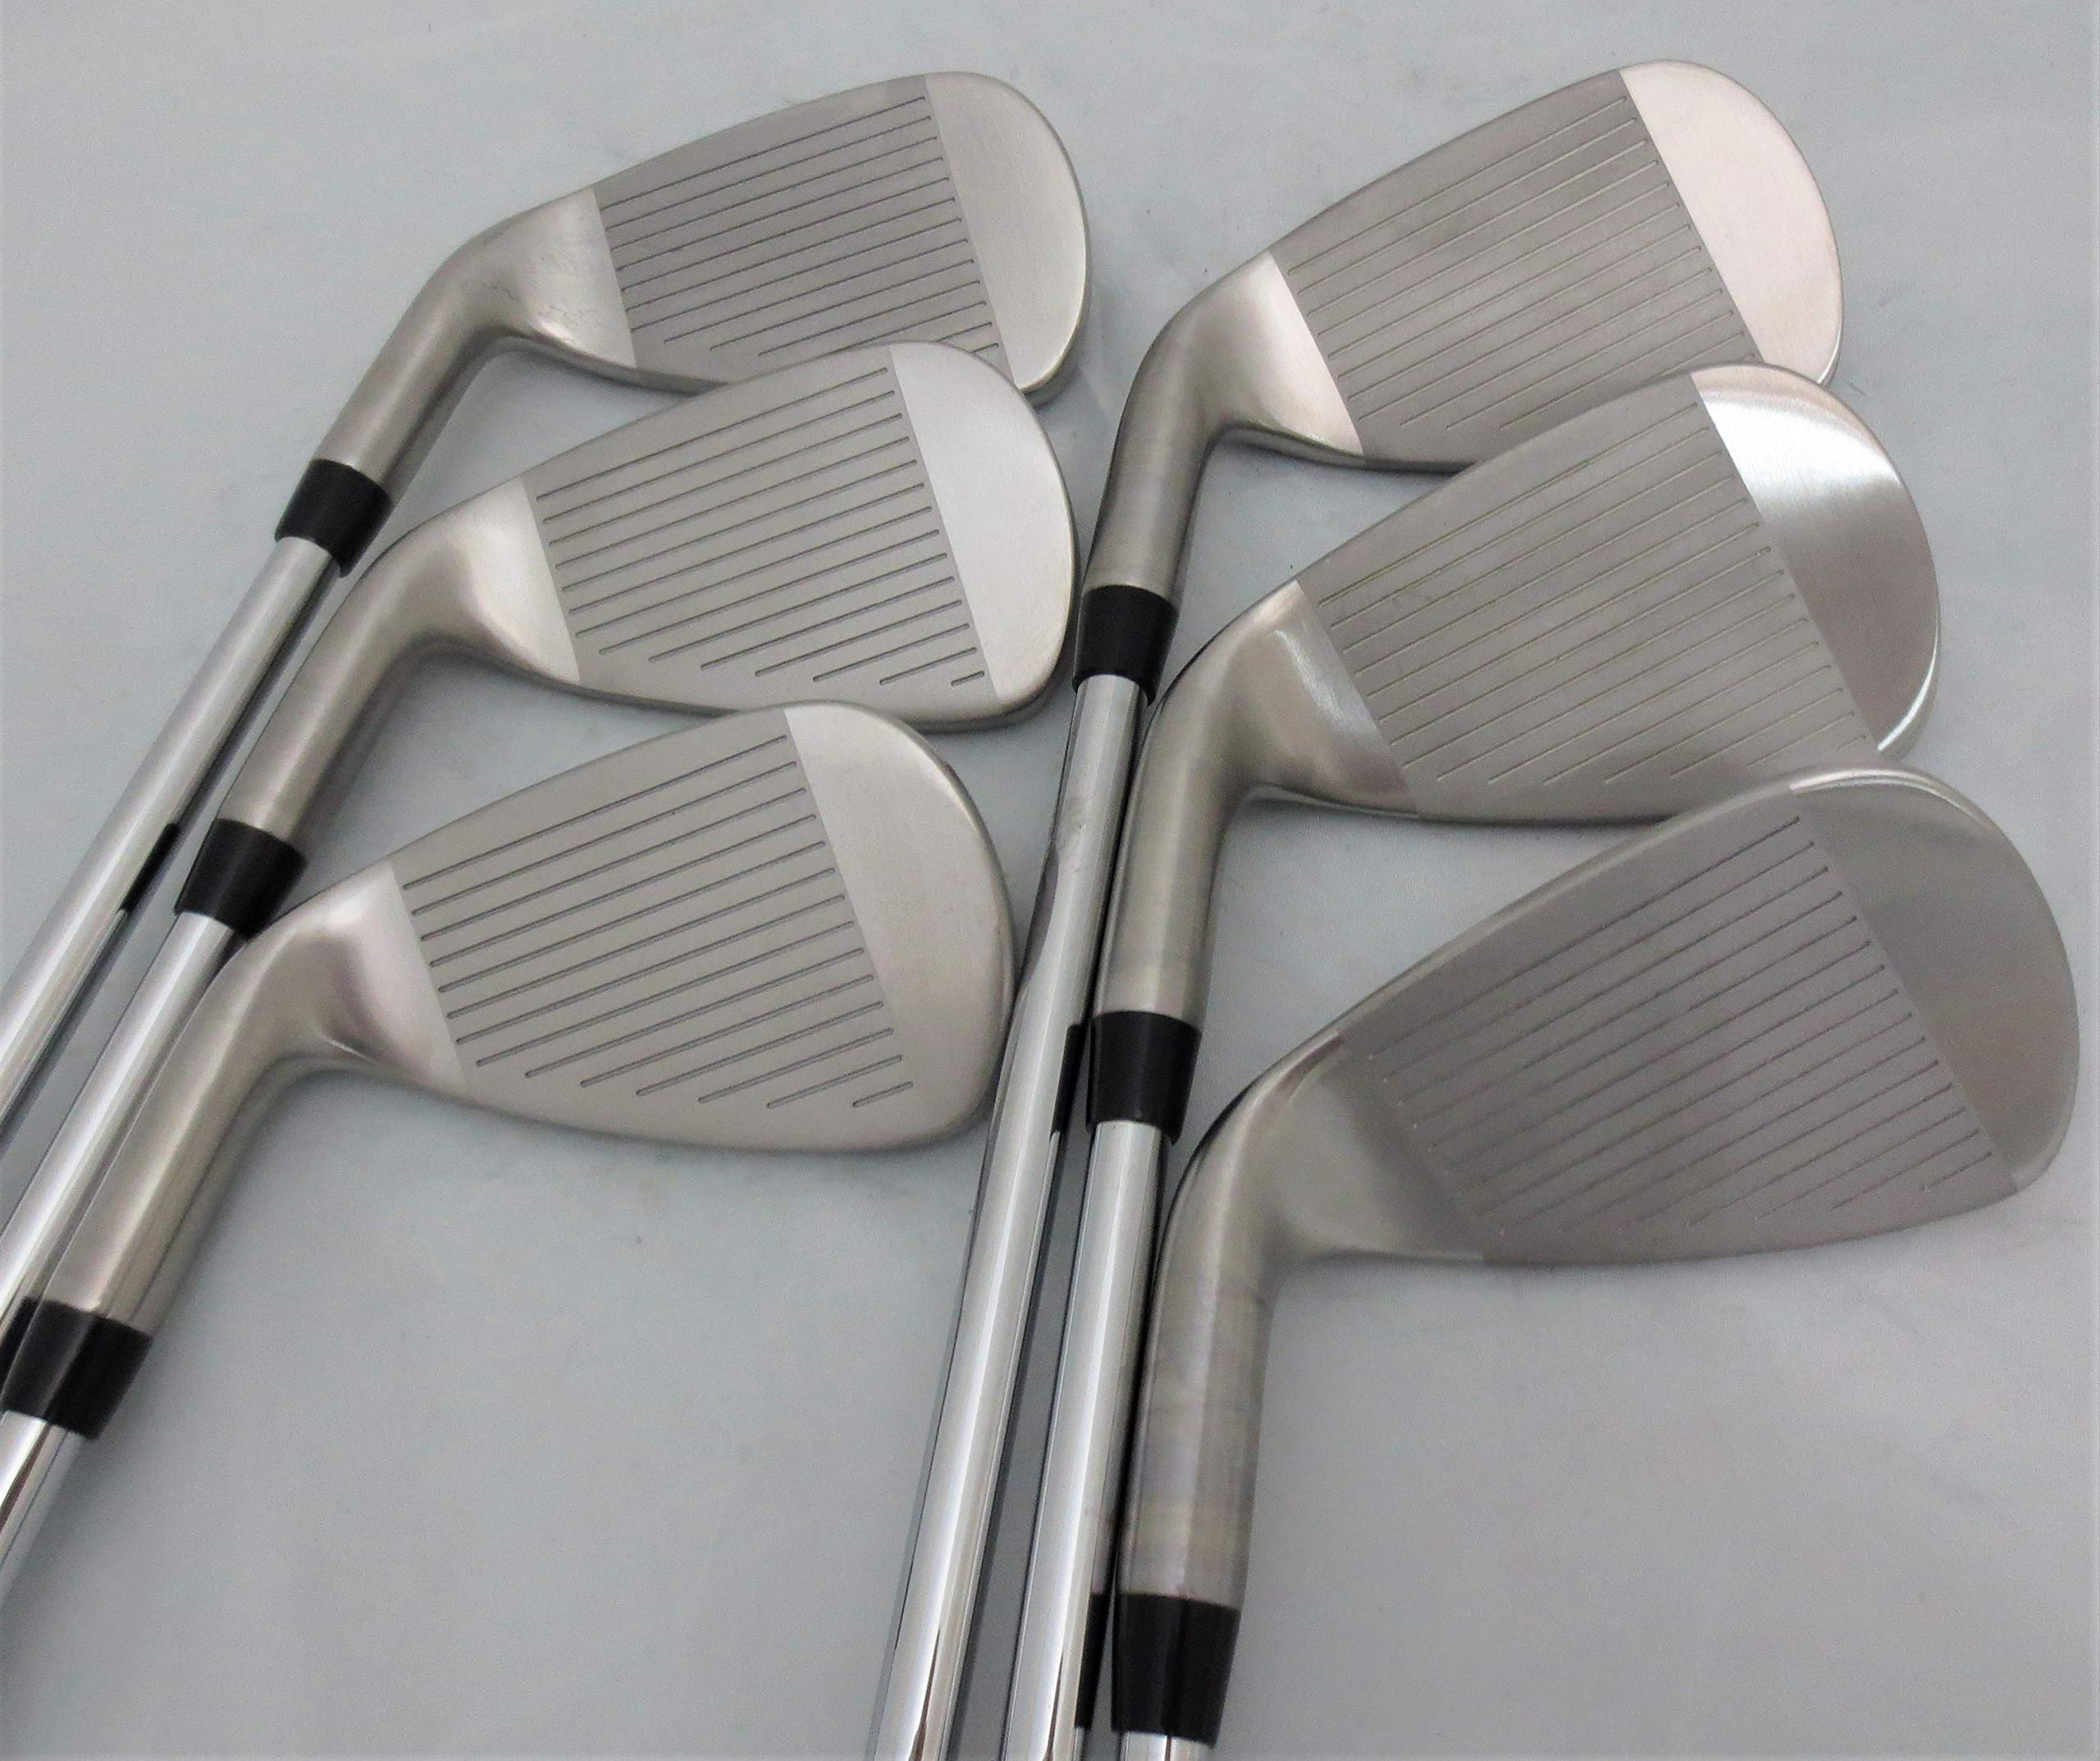 Tartan Sports New Teen Golf Club Set Complete with Stand Bag for Teenagers Ages 13-16 Driver, Wood Hybrid, Irons Putter by Tartan Sports (Image #6)